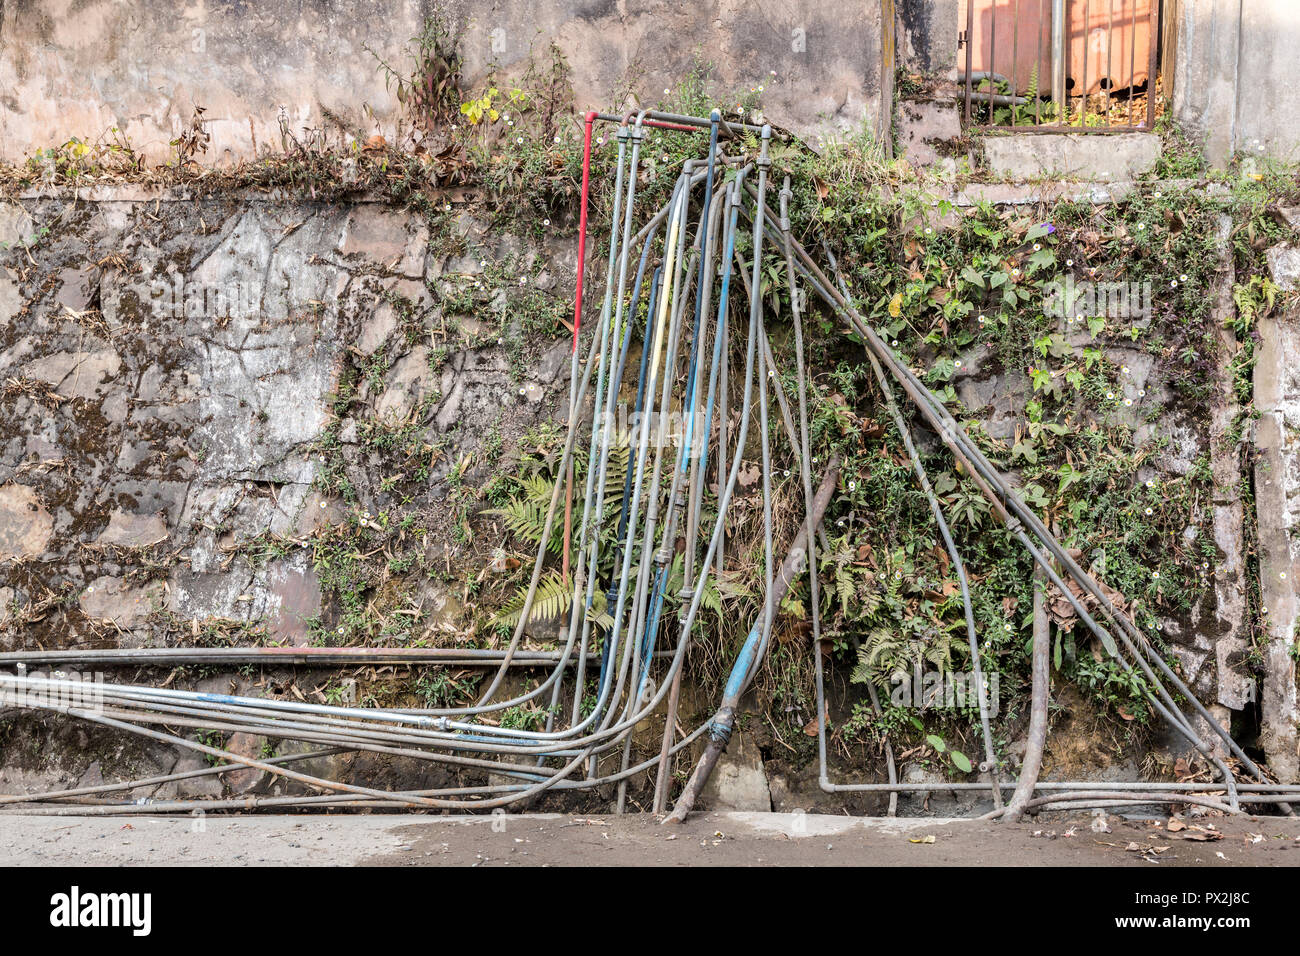 Water pipes in street, Shillong, Meghalaya, India - Stock Image